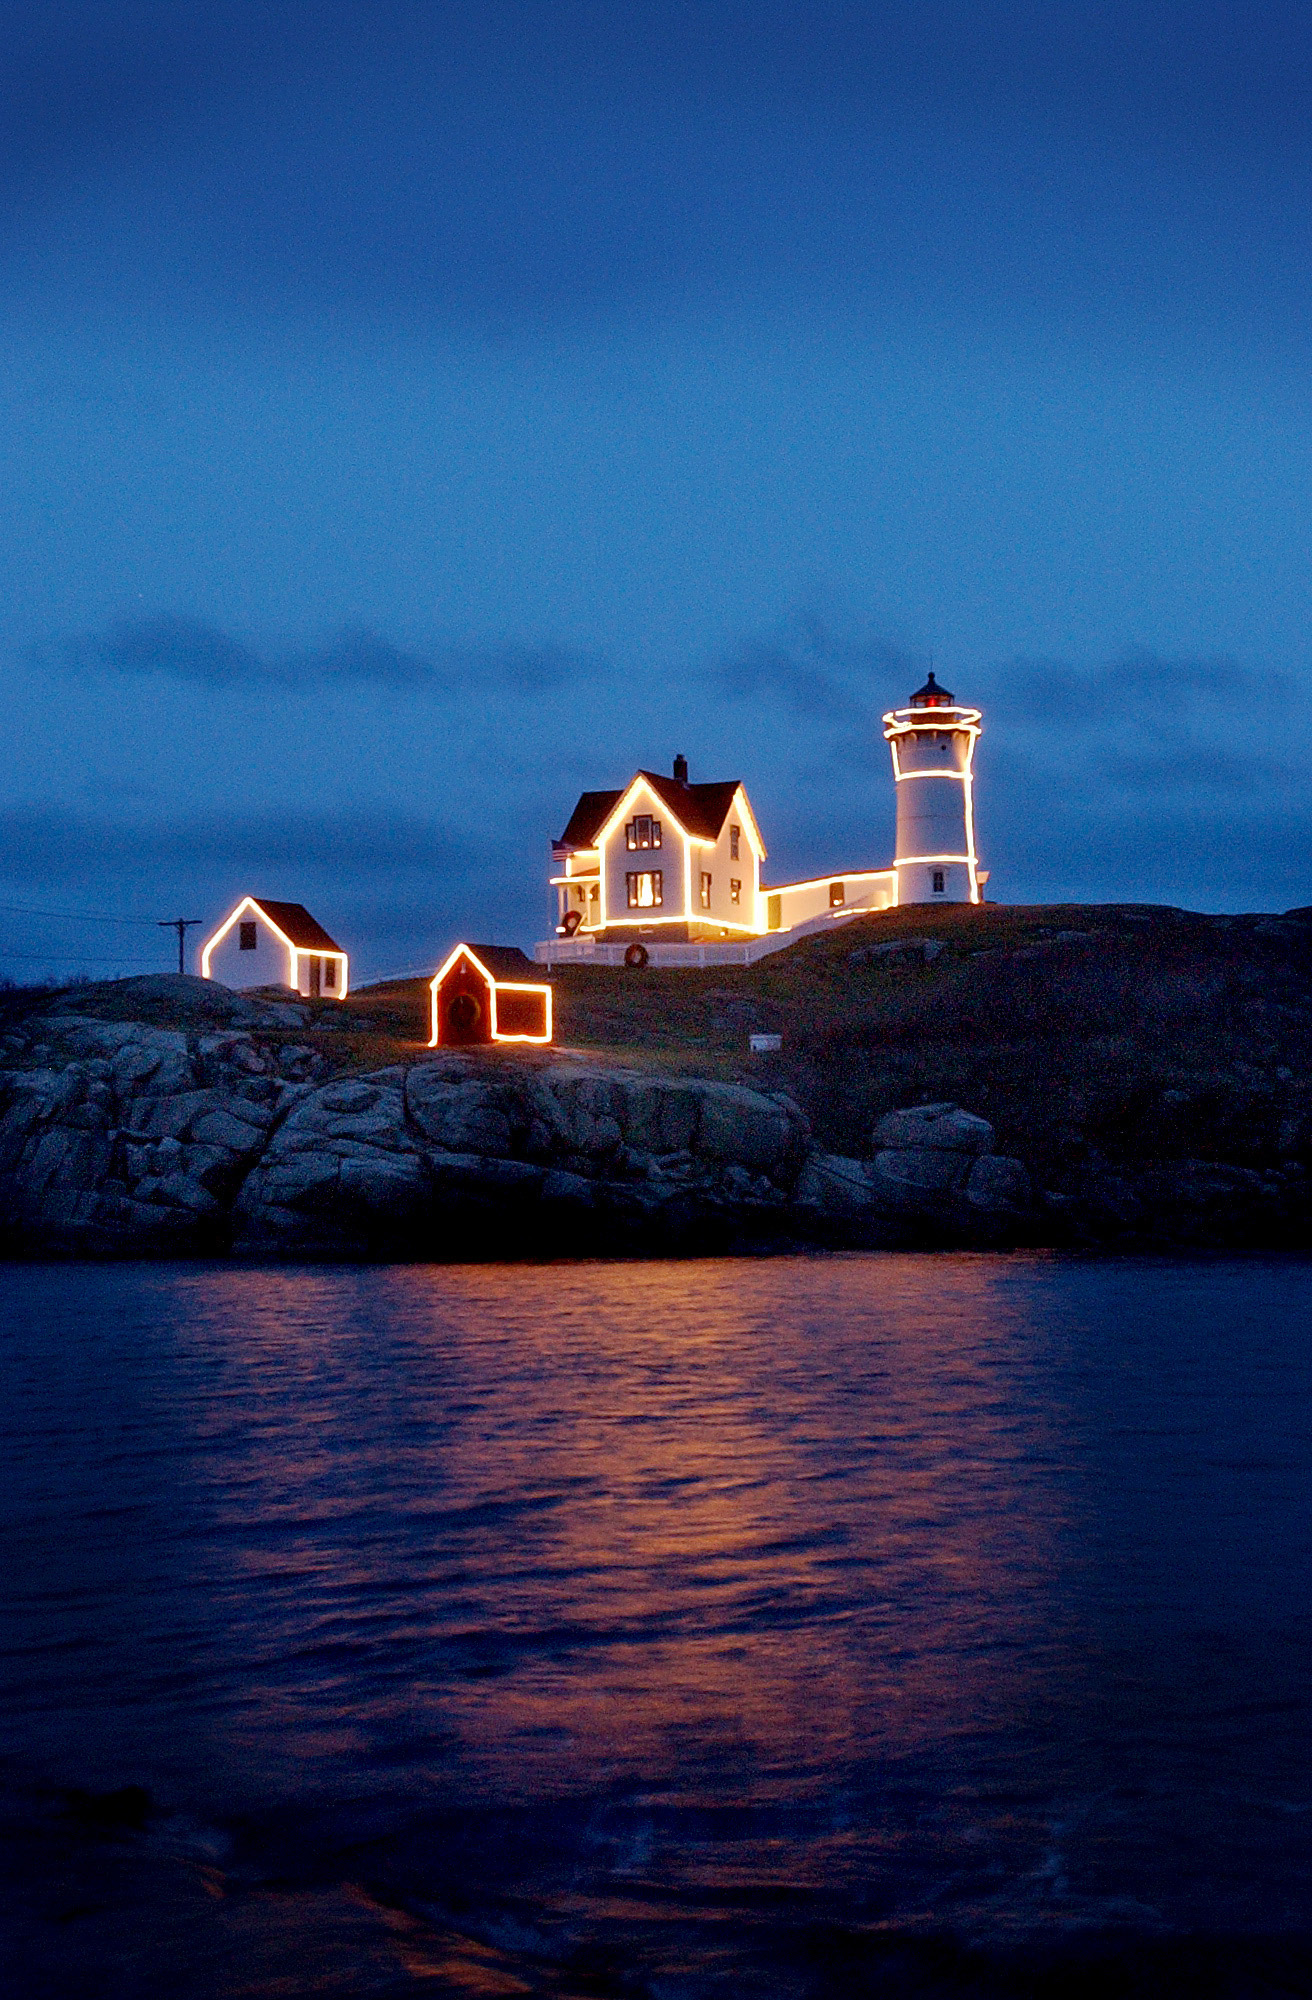 Lighting of the Nubble Lighthouse 2018 at Cape Neddick, Maine